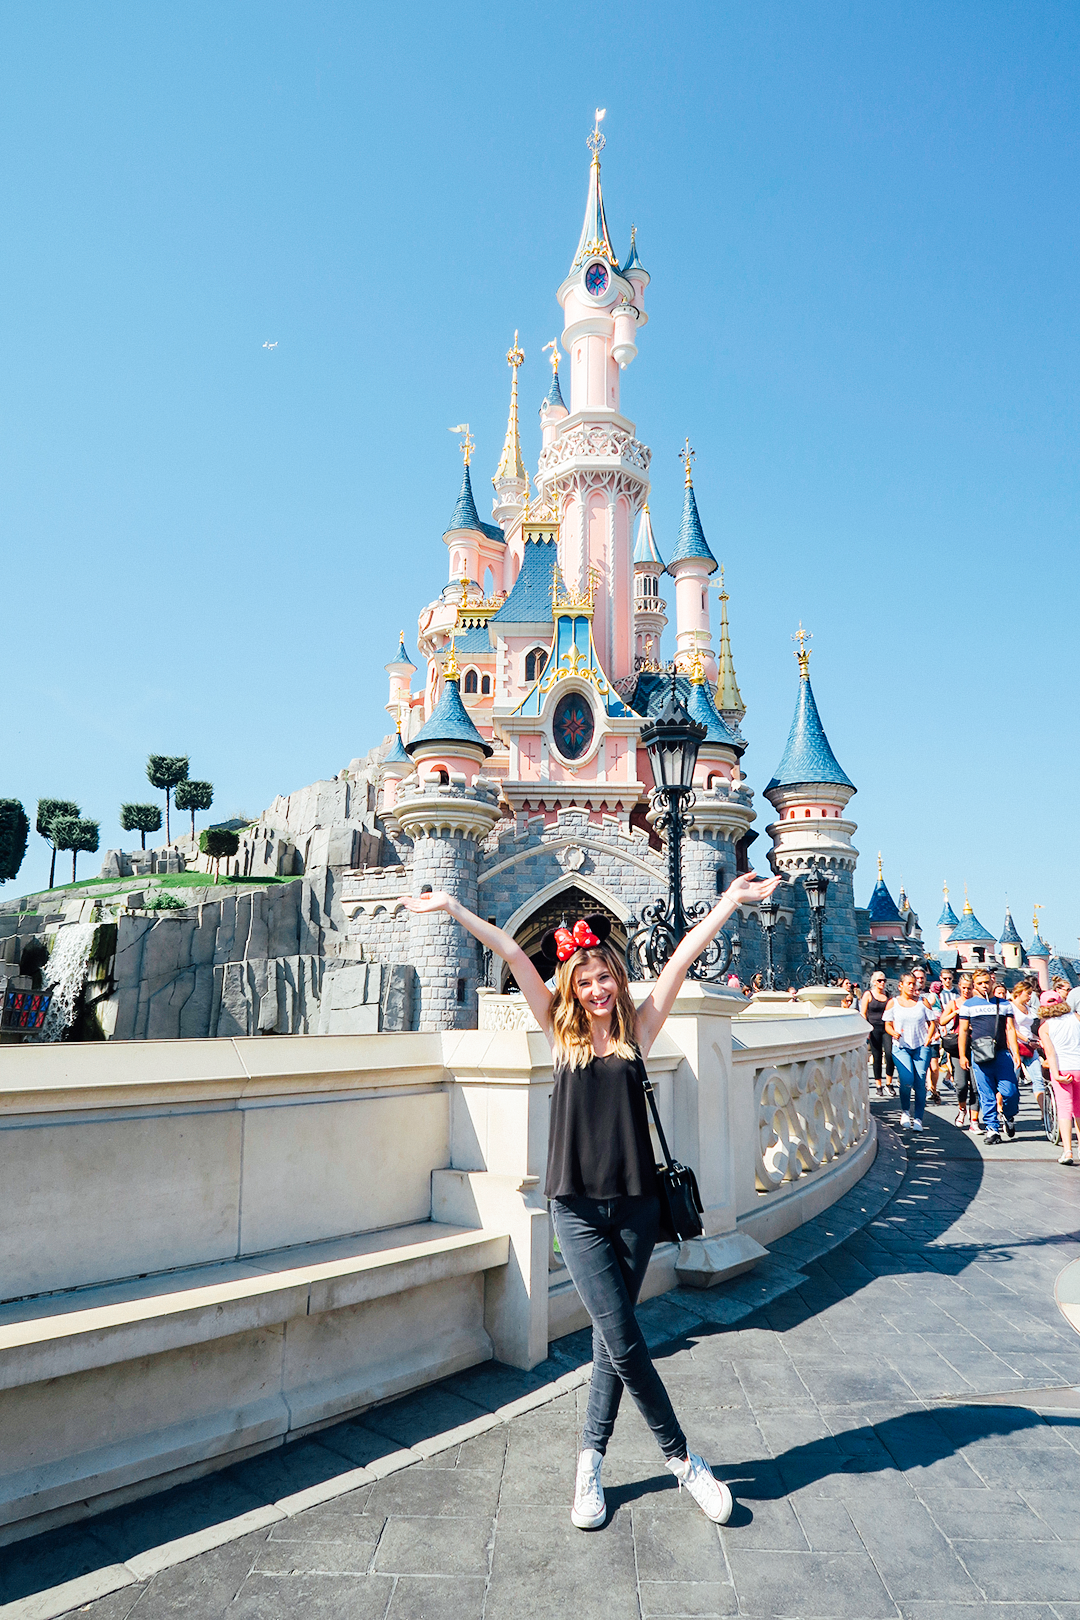 Top 5 things to do in Disneyland Paris